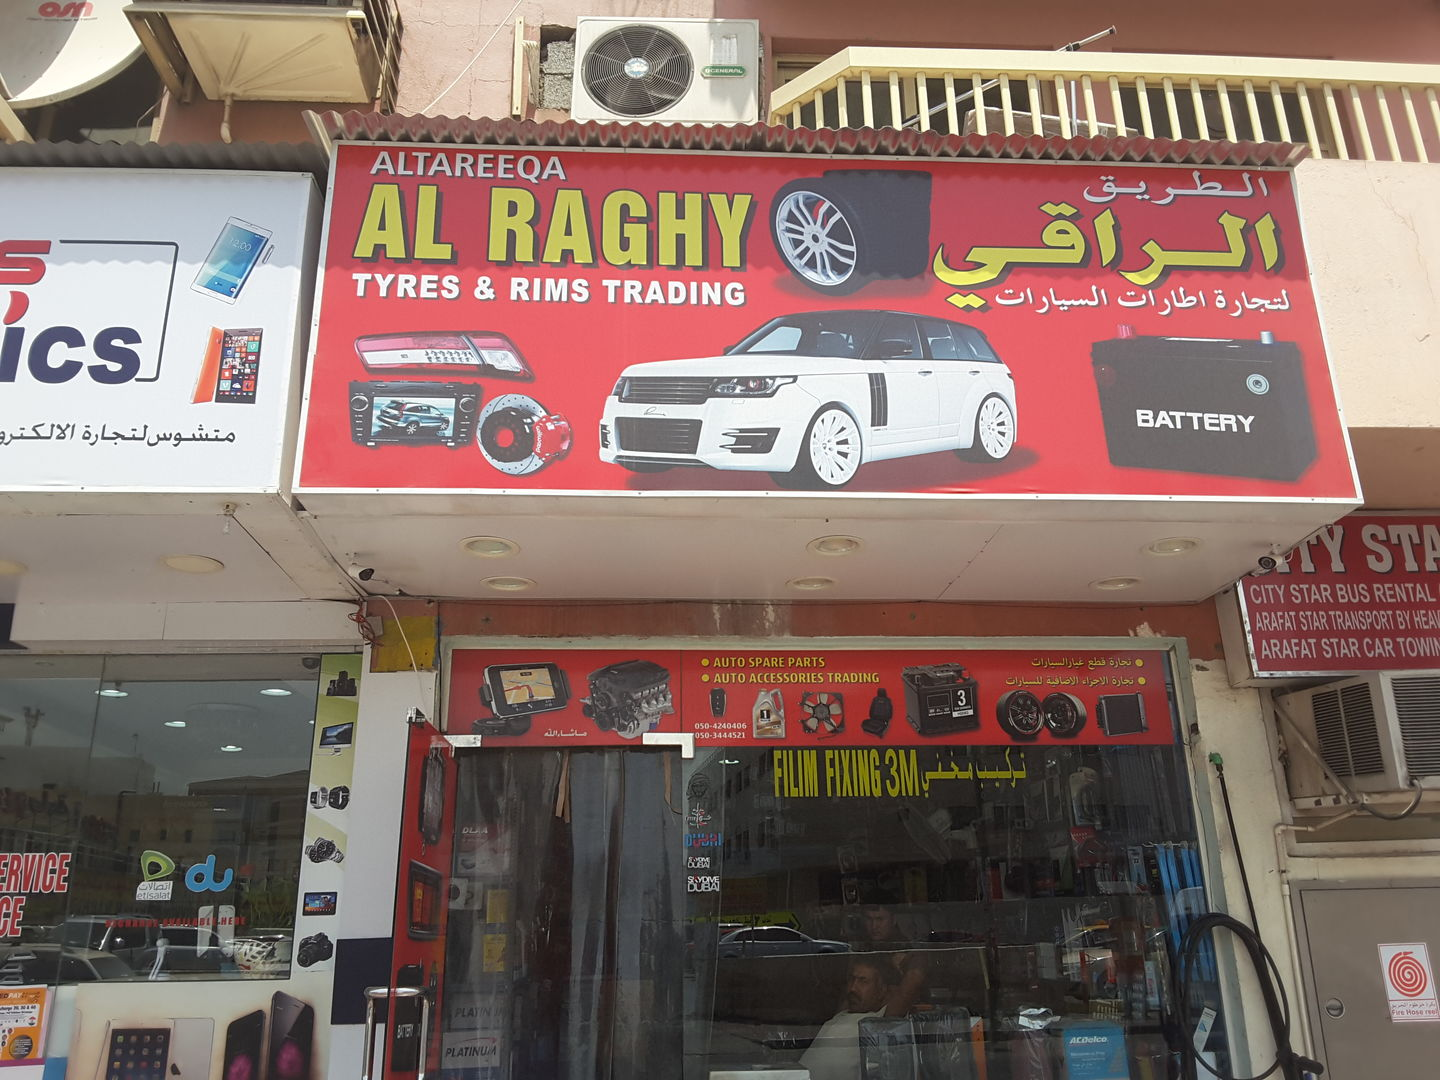 HiDubai-business-altareeqa-al-raghy-tyres-rims-trading-transport-vehicle-services-motorcycle-spare-parts-accessories-hor-al-anz-dubai-2